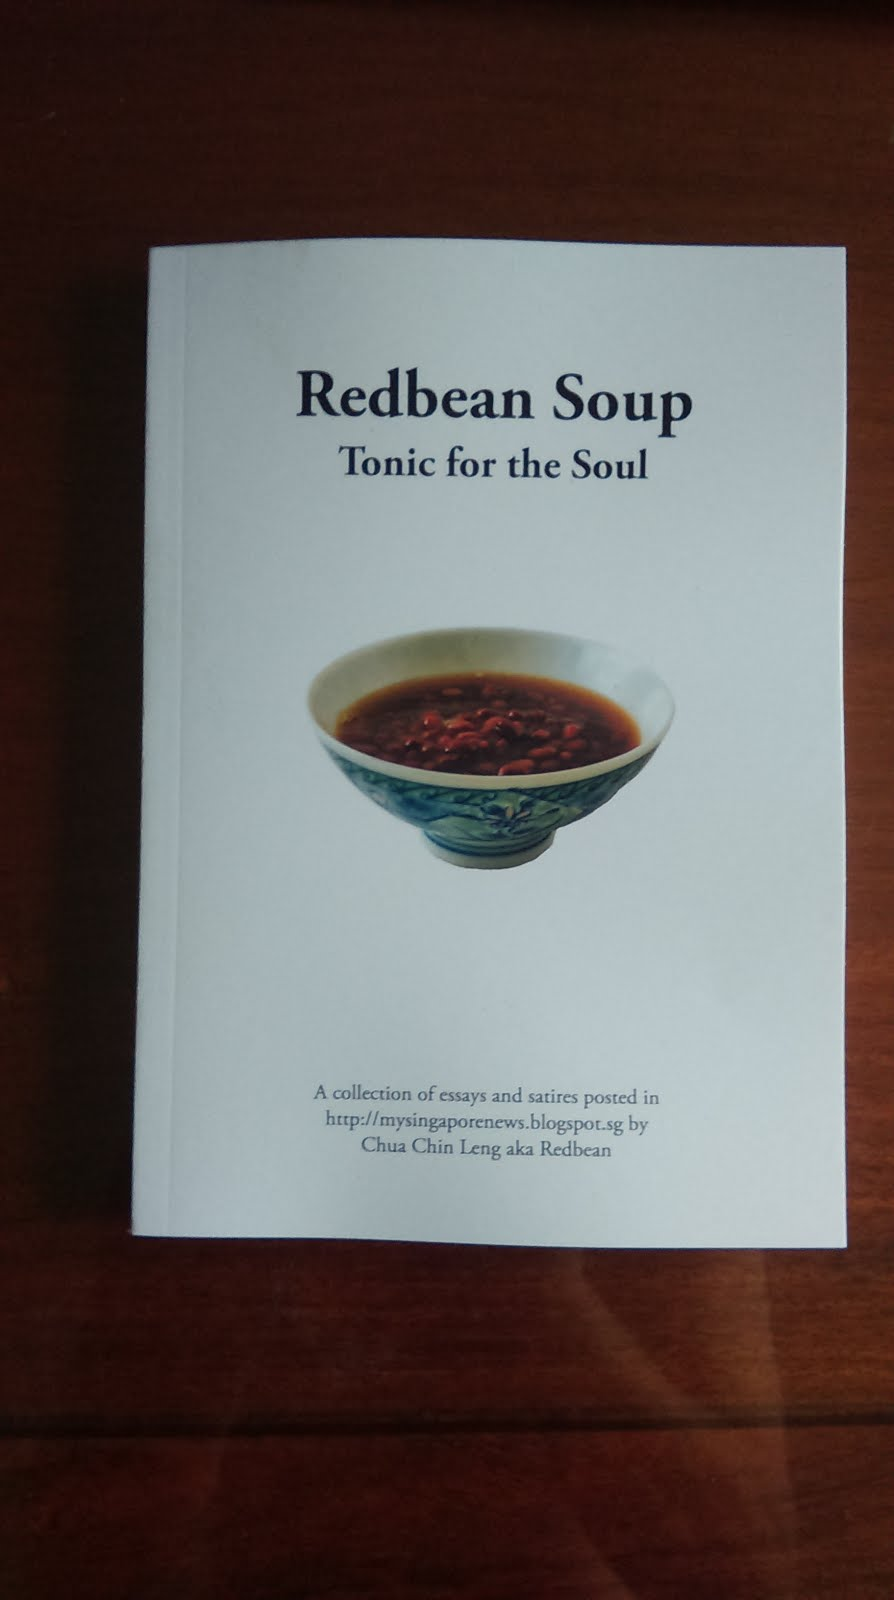 Redbean Soup